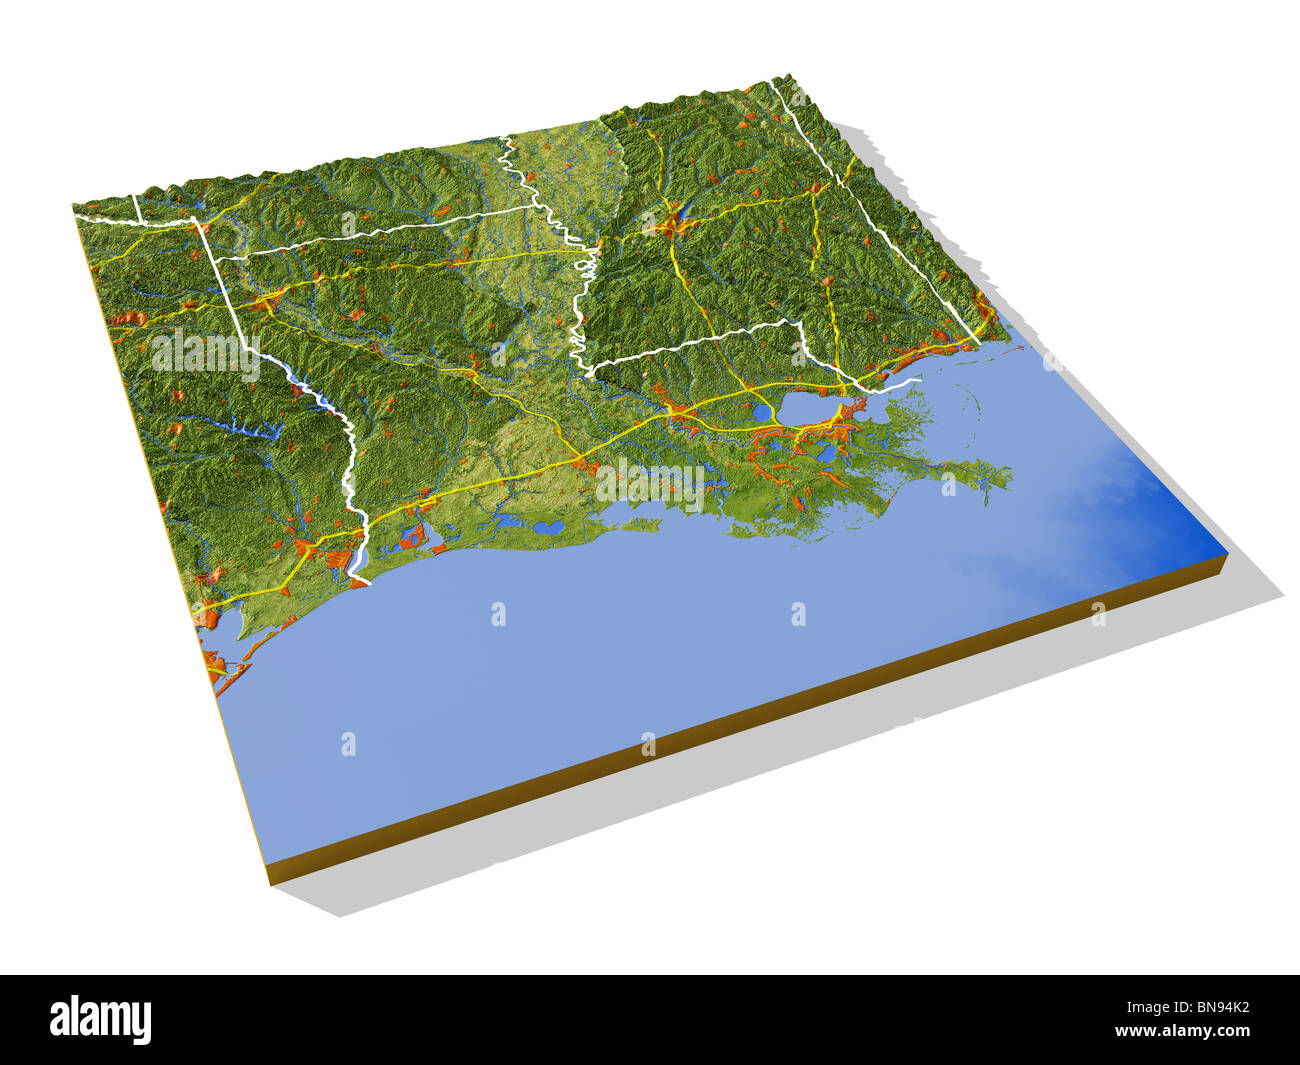 Interstate Map Of Louisiana.Louisiana 3d Relief Map With Urban Areas Interstate Highways And